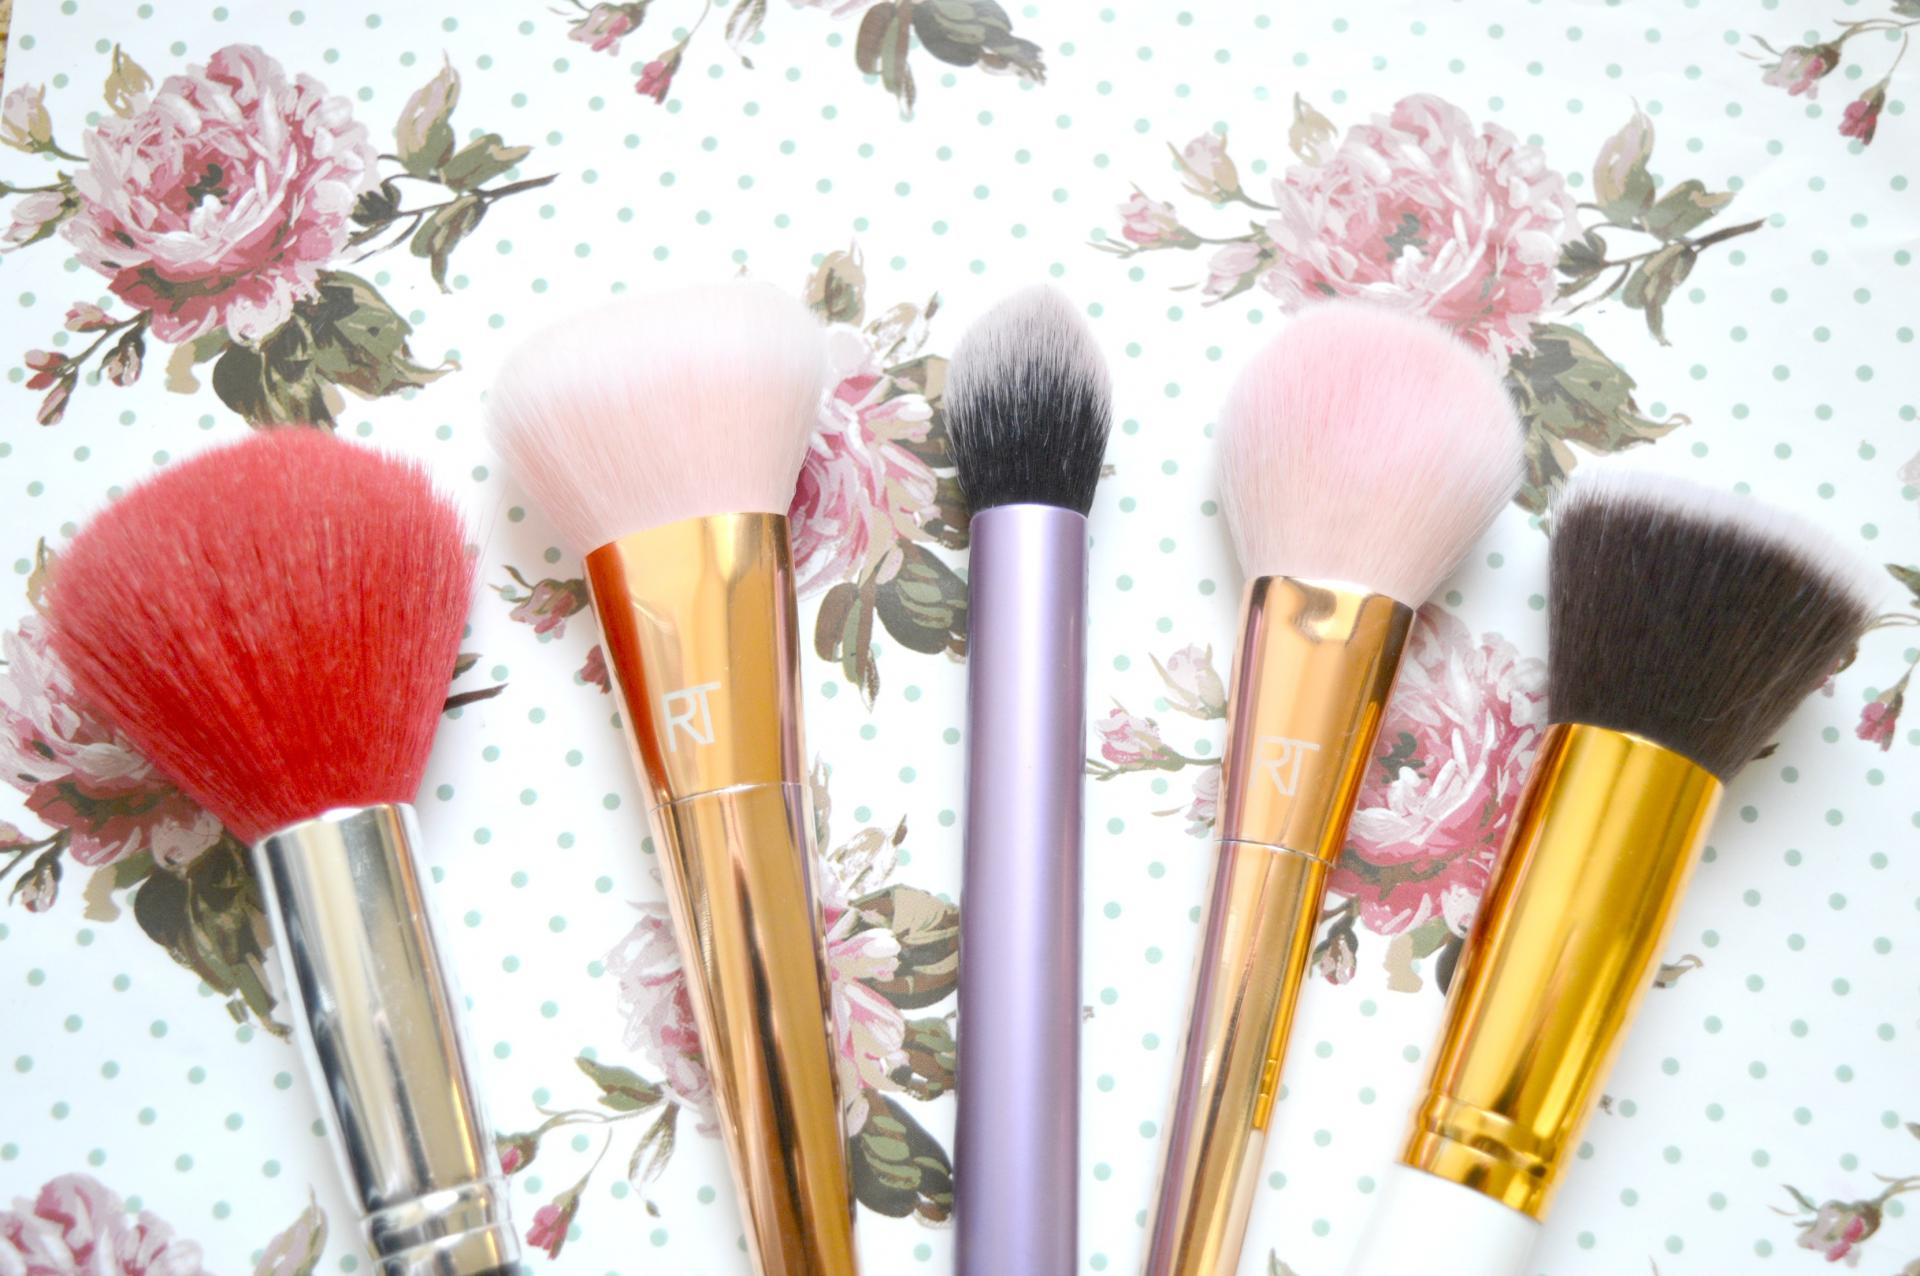 5 Face Brushes I Recommend Checking Out | Veil Powder Brush, Real Techniques Bold Metals Contour Brush Dupe, Real Techniques Core Collection Contour Brush Dupe, Real Techniques Bold Metals Tapered Blush Brush Dupe and Sigma Flat Foundation Brush Dupe